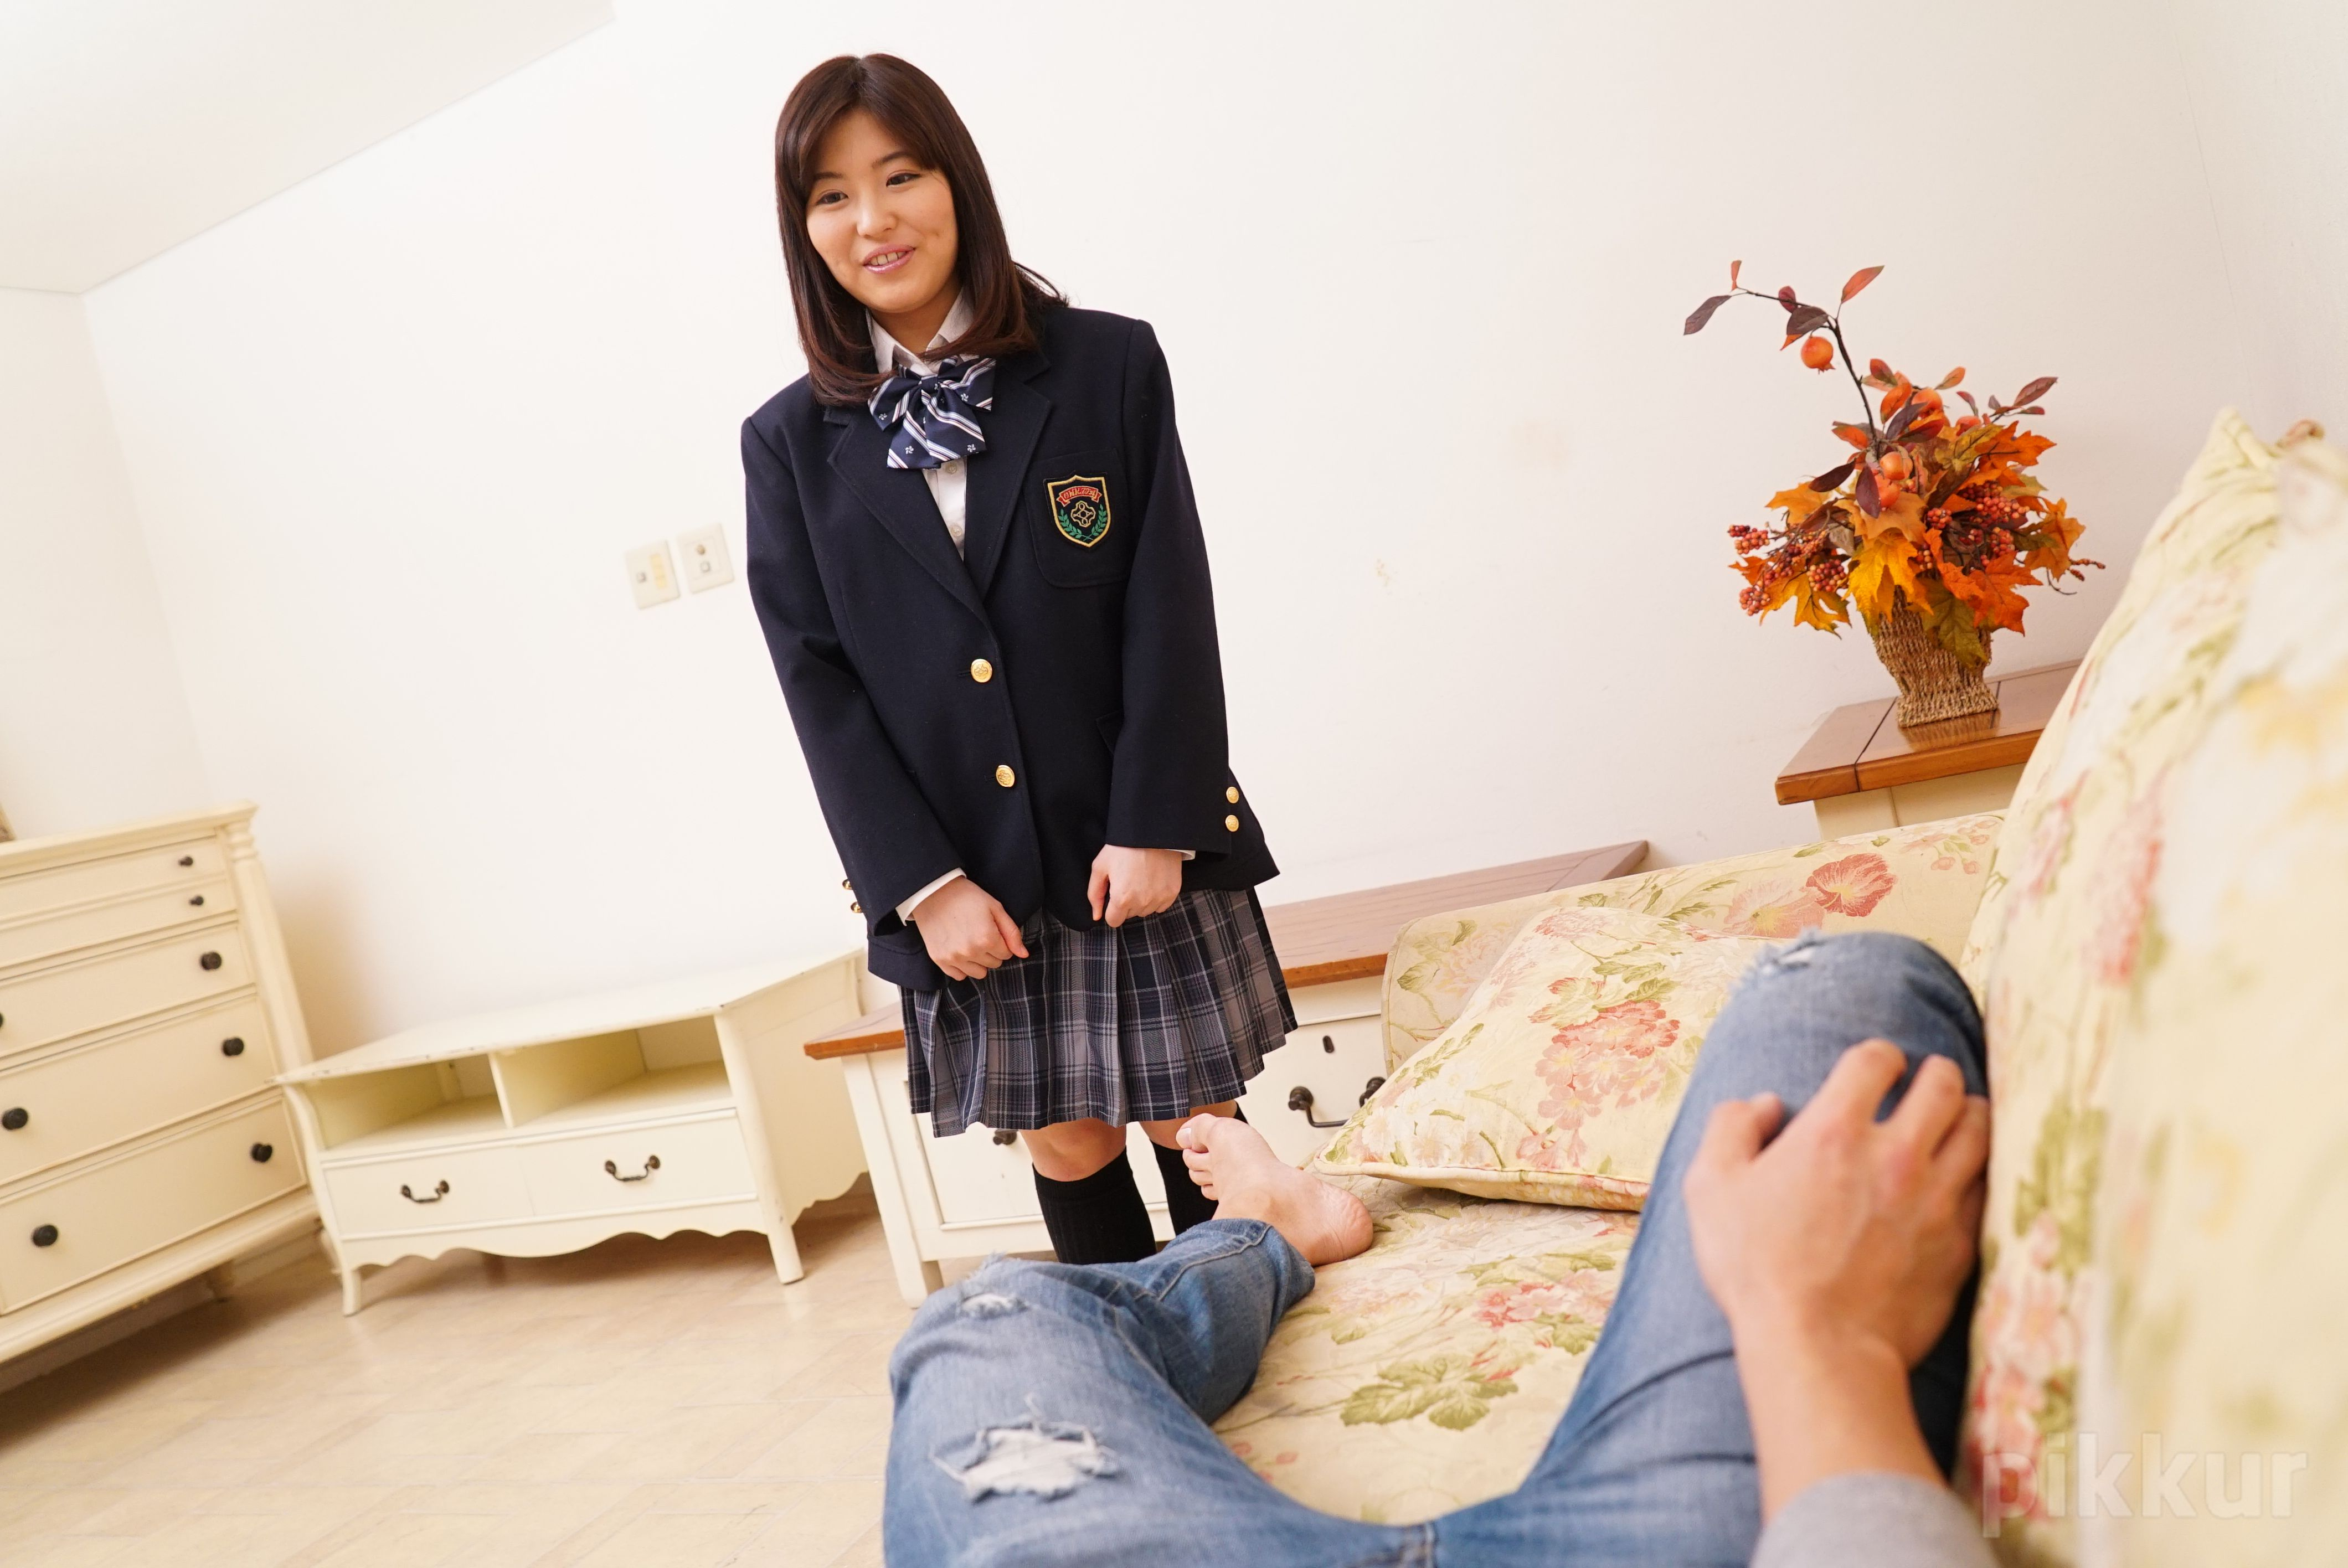 Cherry Popped with Wicked Girl -Virgin Boy Eater Gets Creampied- - Nana Natsume Nana Natsume 01